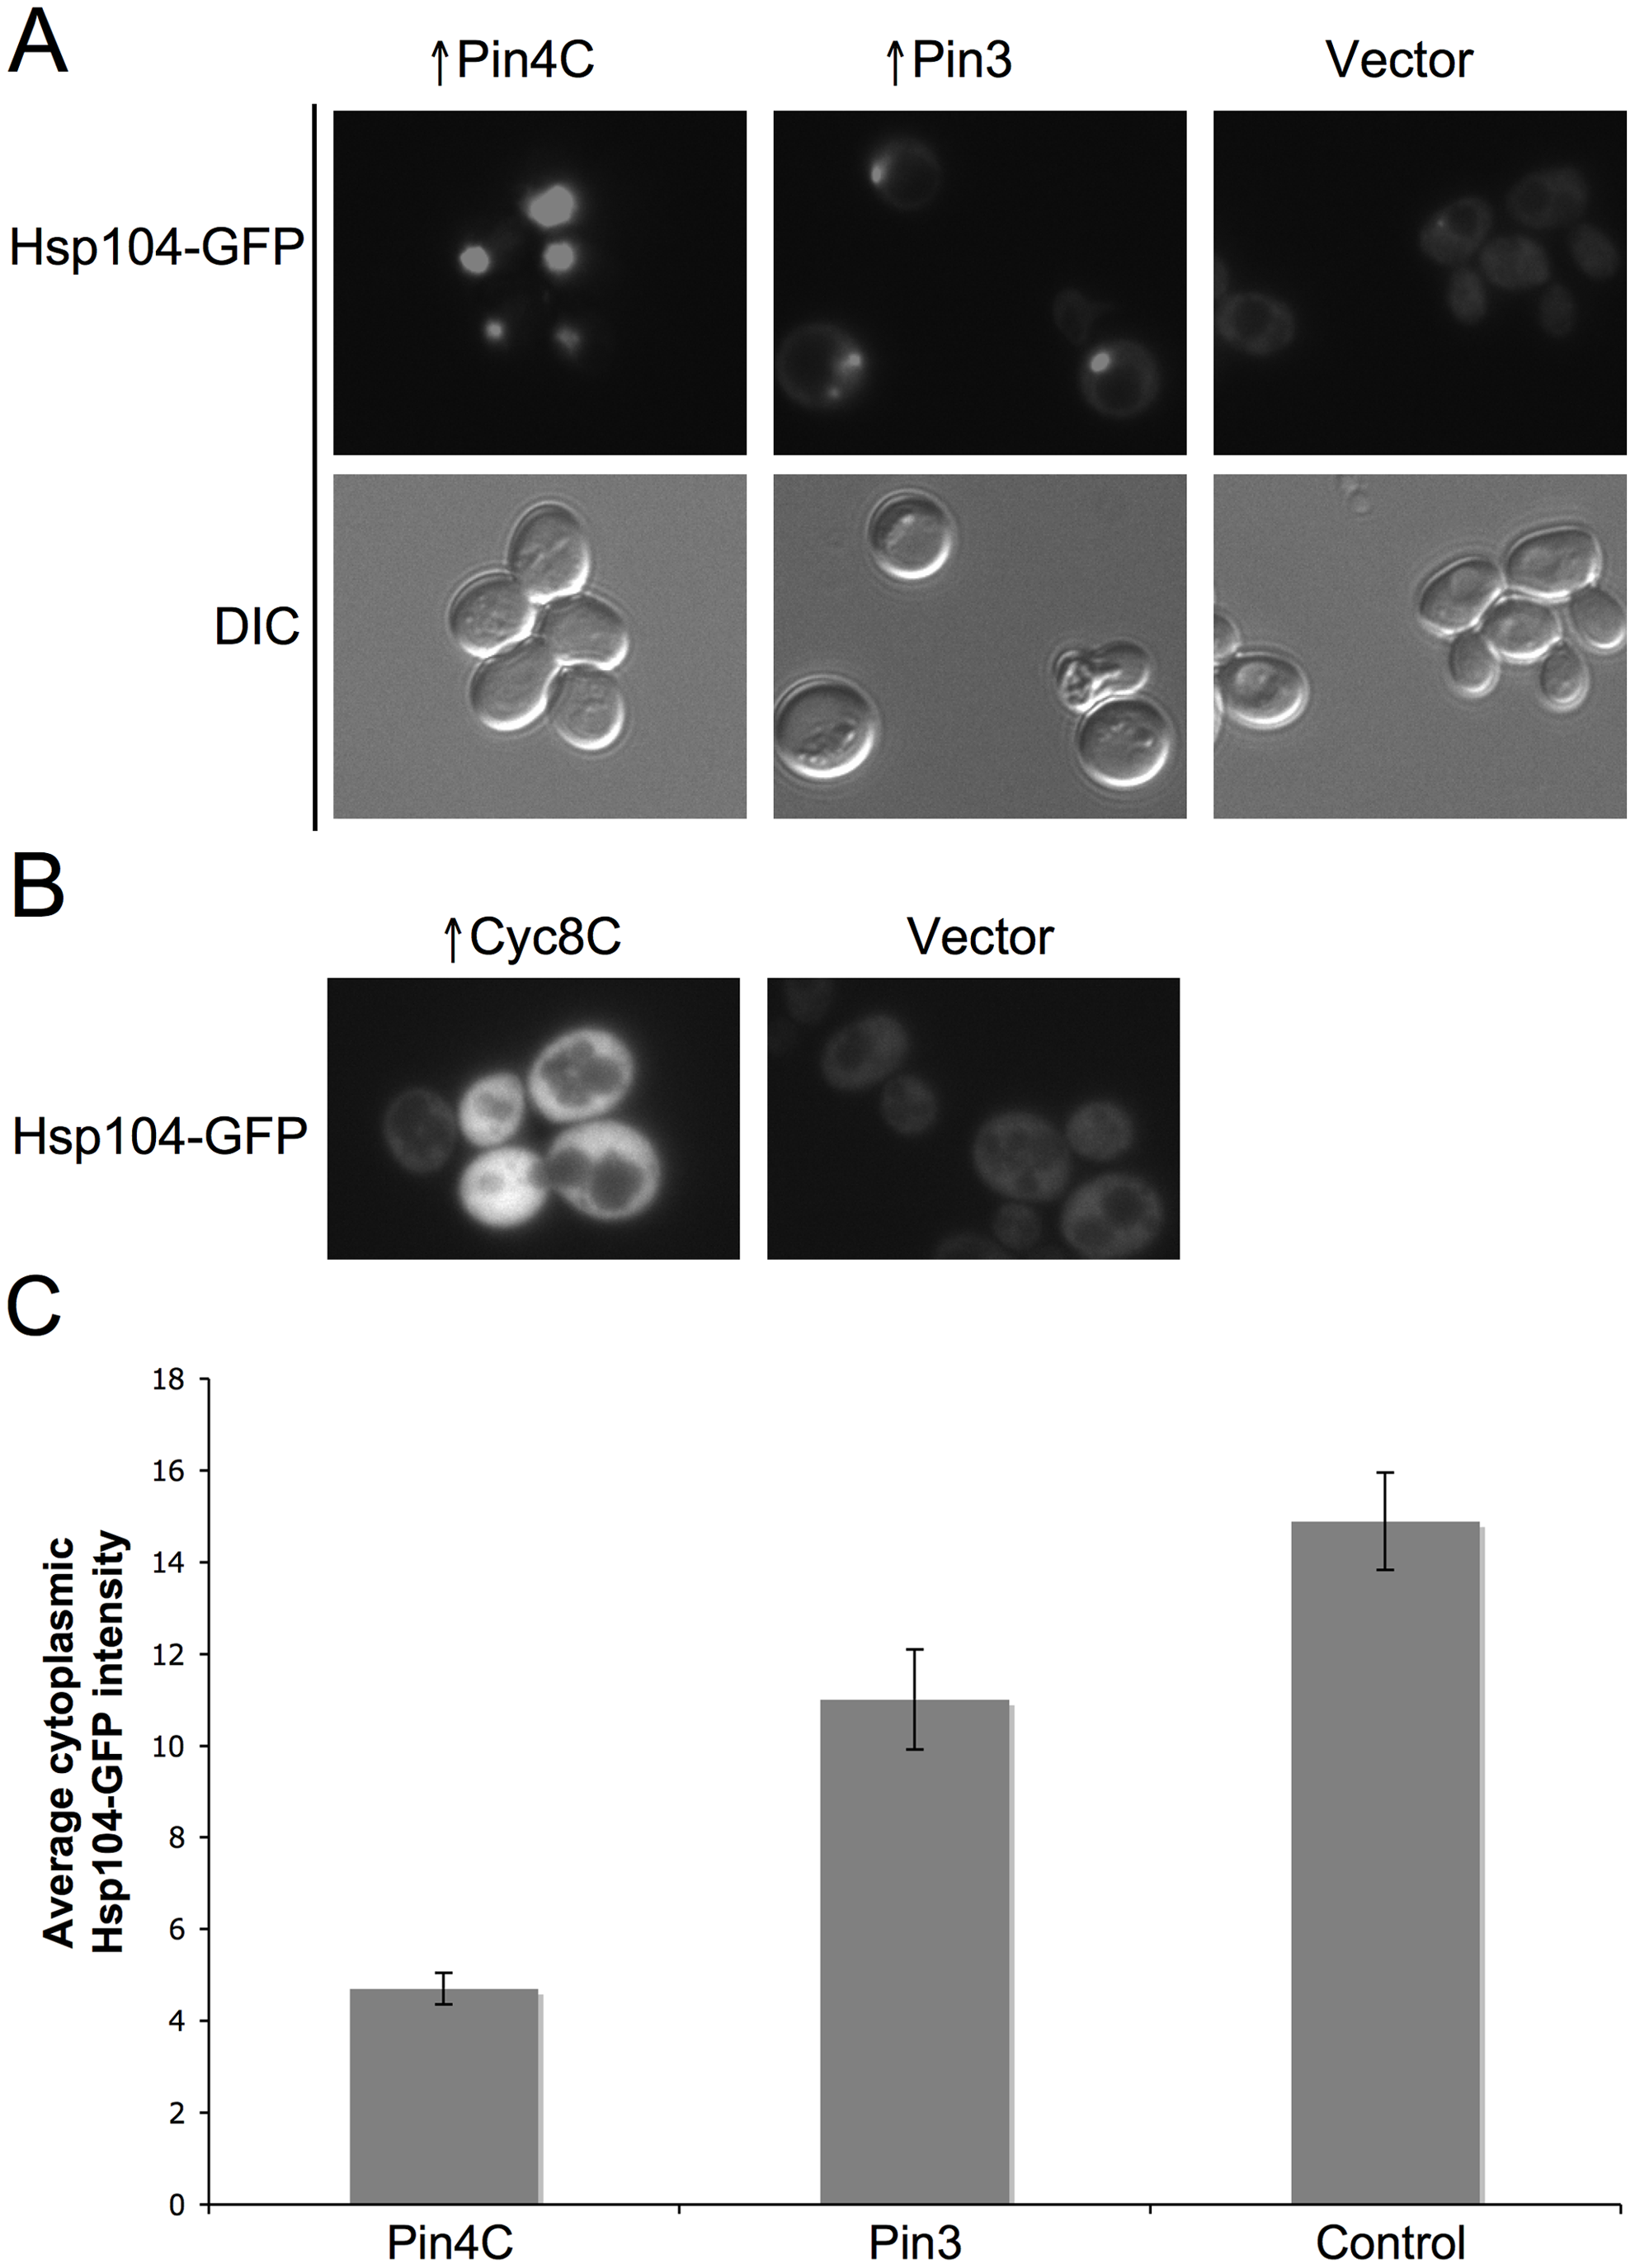 Effects of overexpressed Pin3 and Cyc8C on Hsp104.